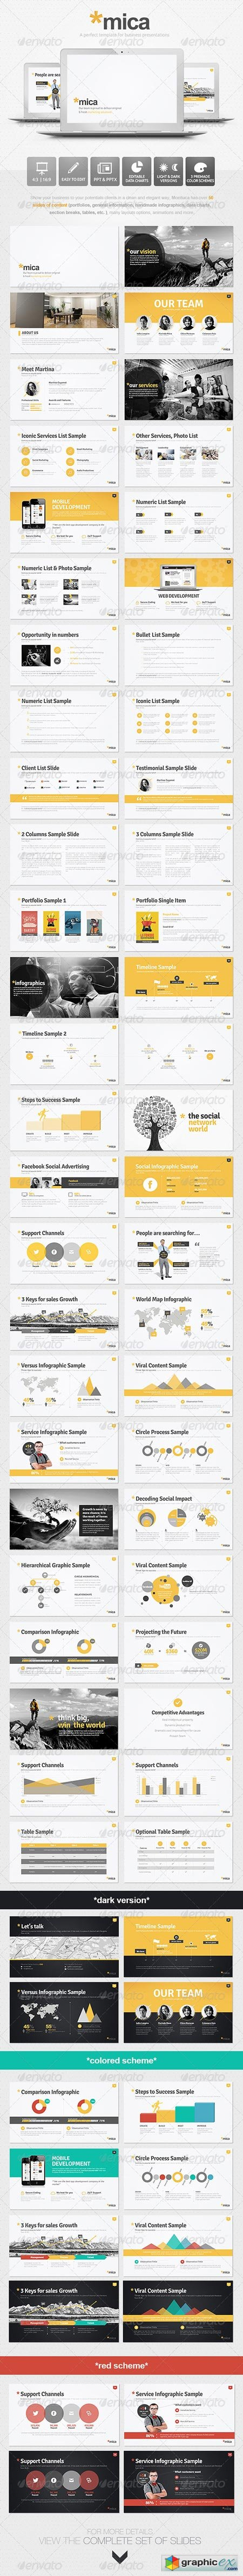 Mica Powerpoint Presentation Template 5641213